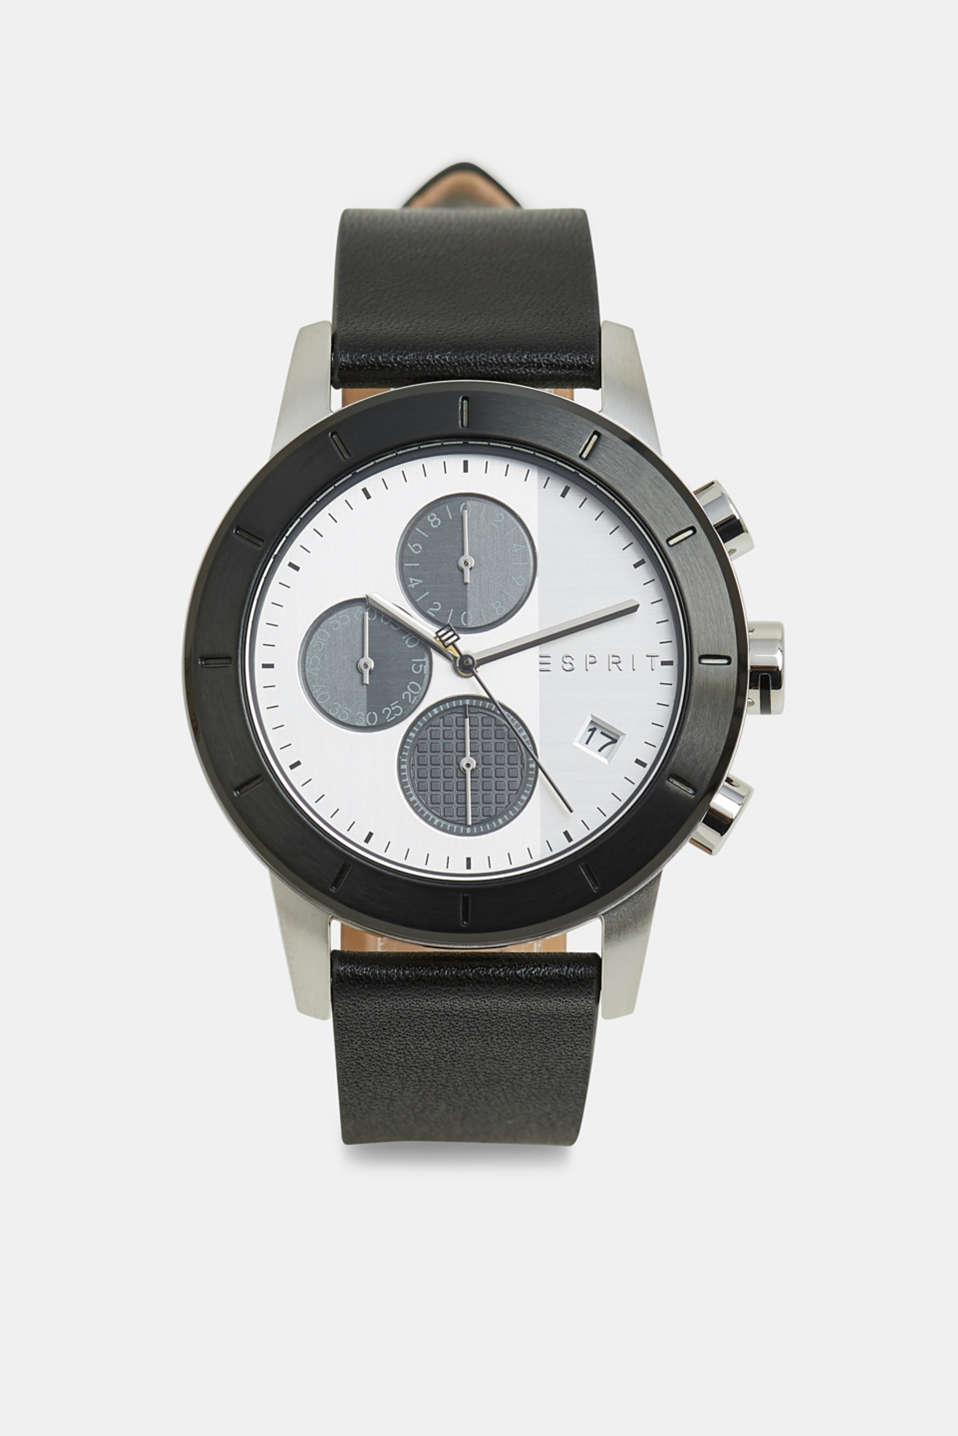 Esprit - Stainless steel chronograph with a leather strap